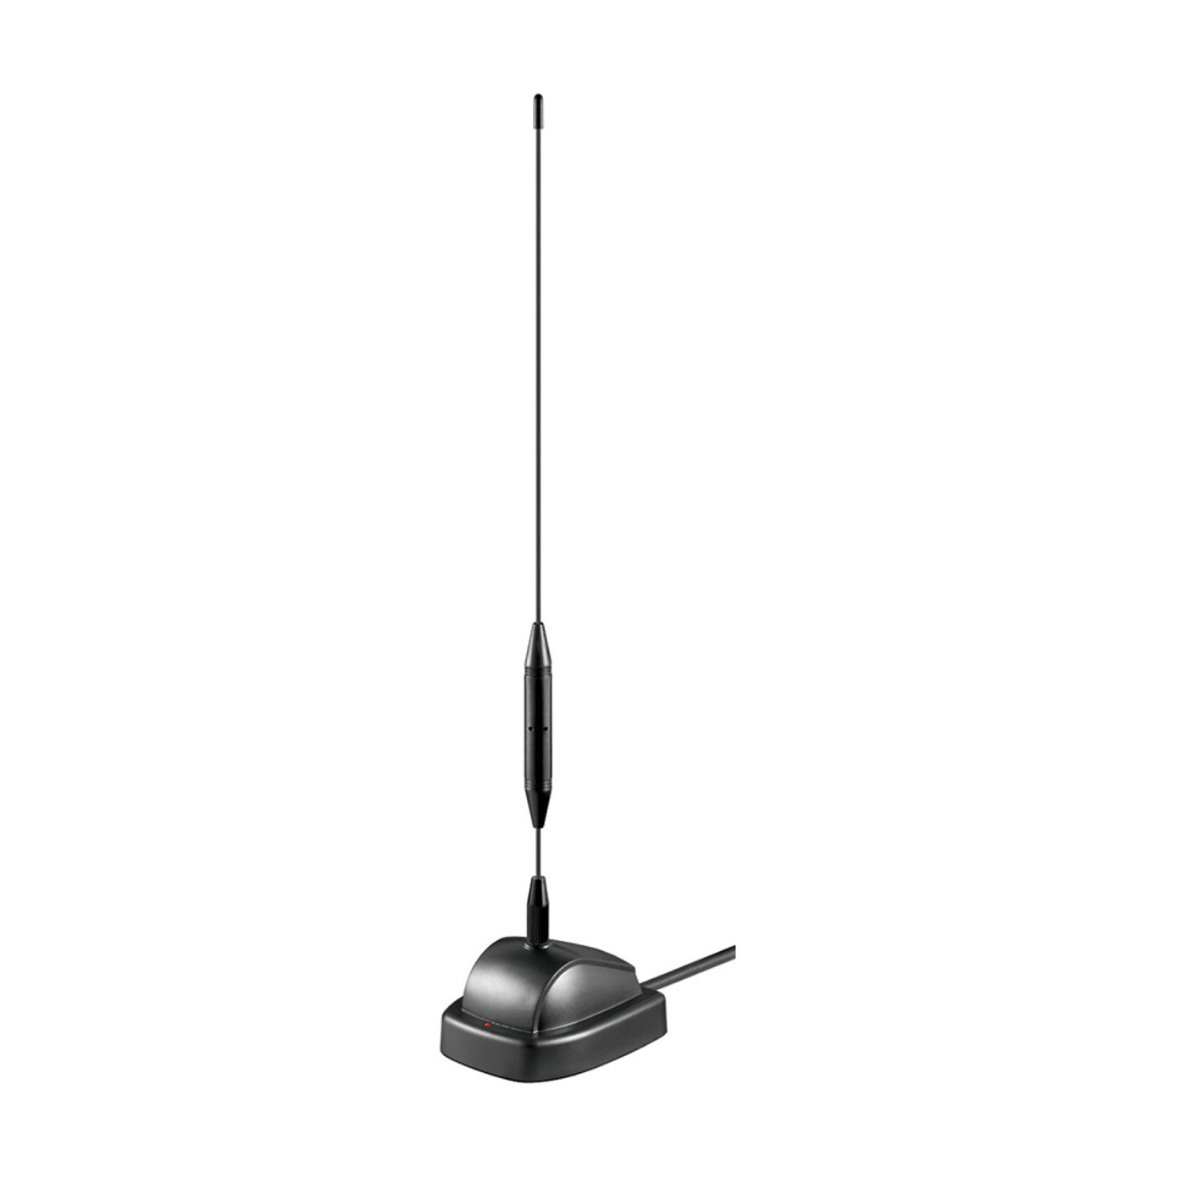 goobay dvb t dvbt antenne zimmerantenne au en outdoor hd full fullhd vhf uhf dab ebay. Black Bedroom Furniture Sets. Home Design Ideas